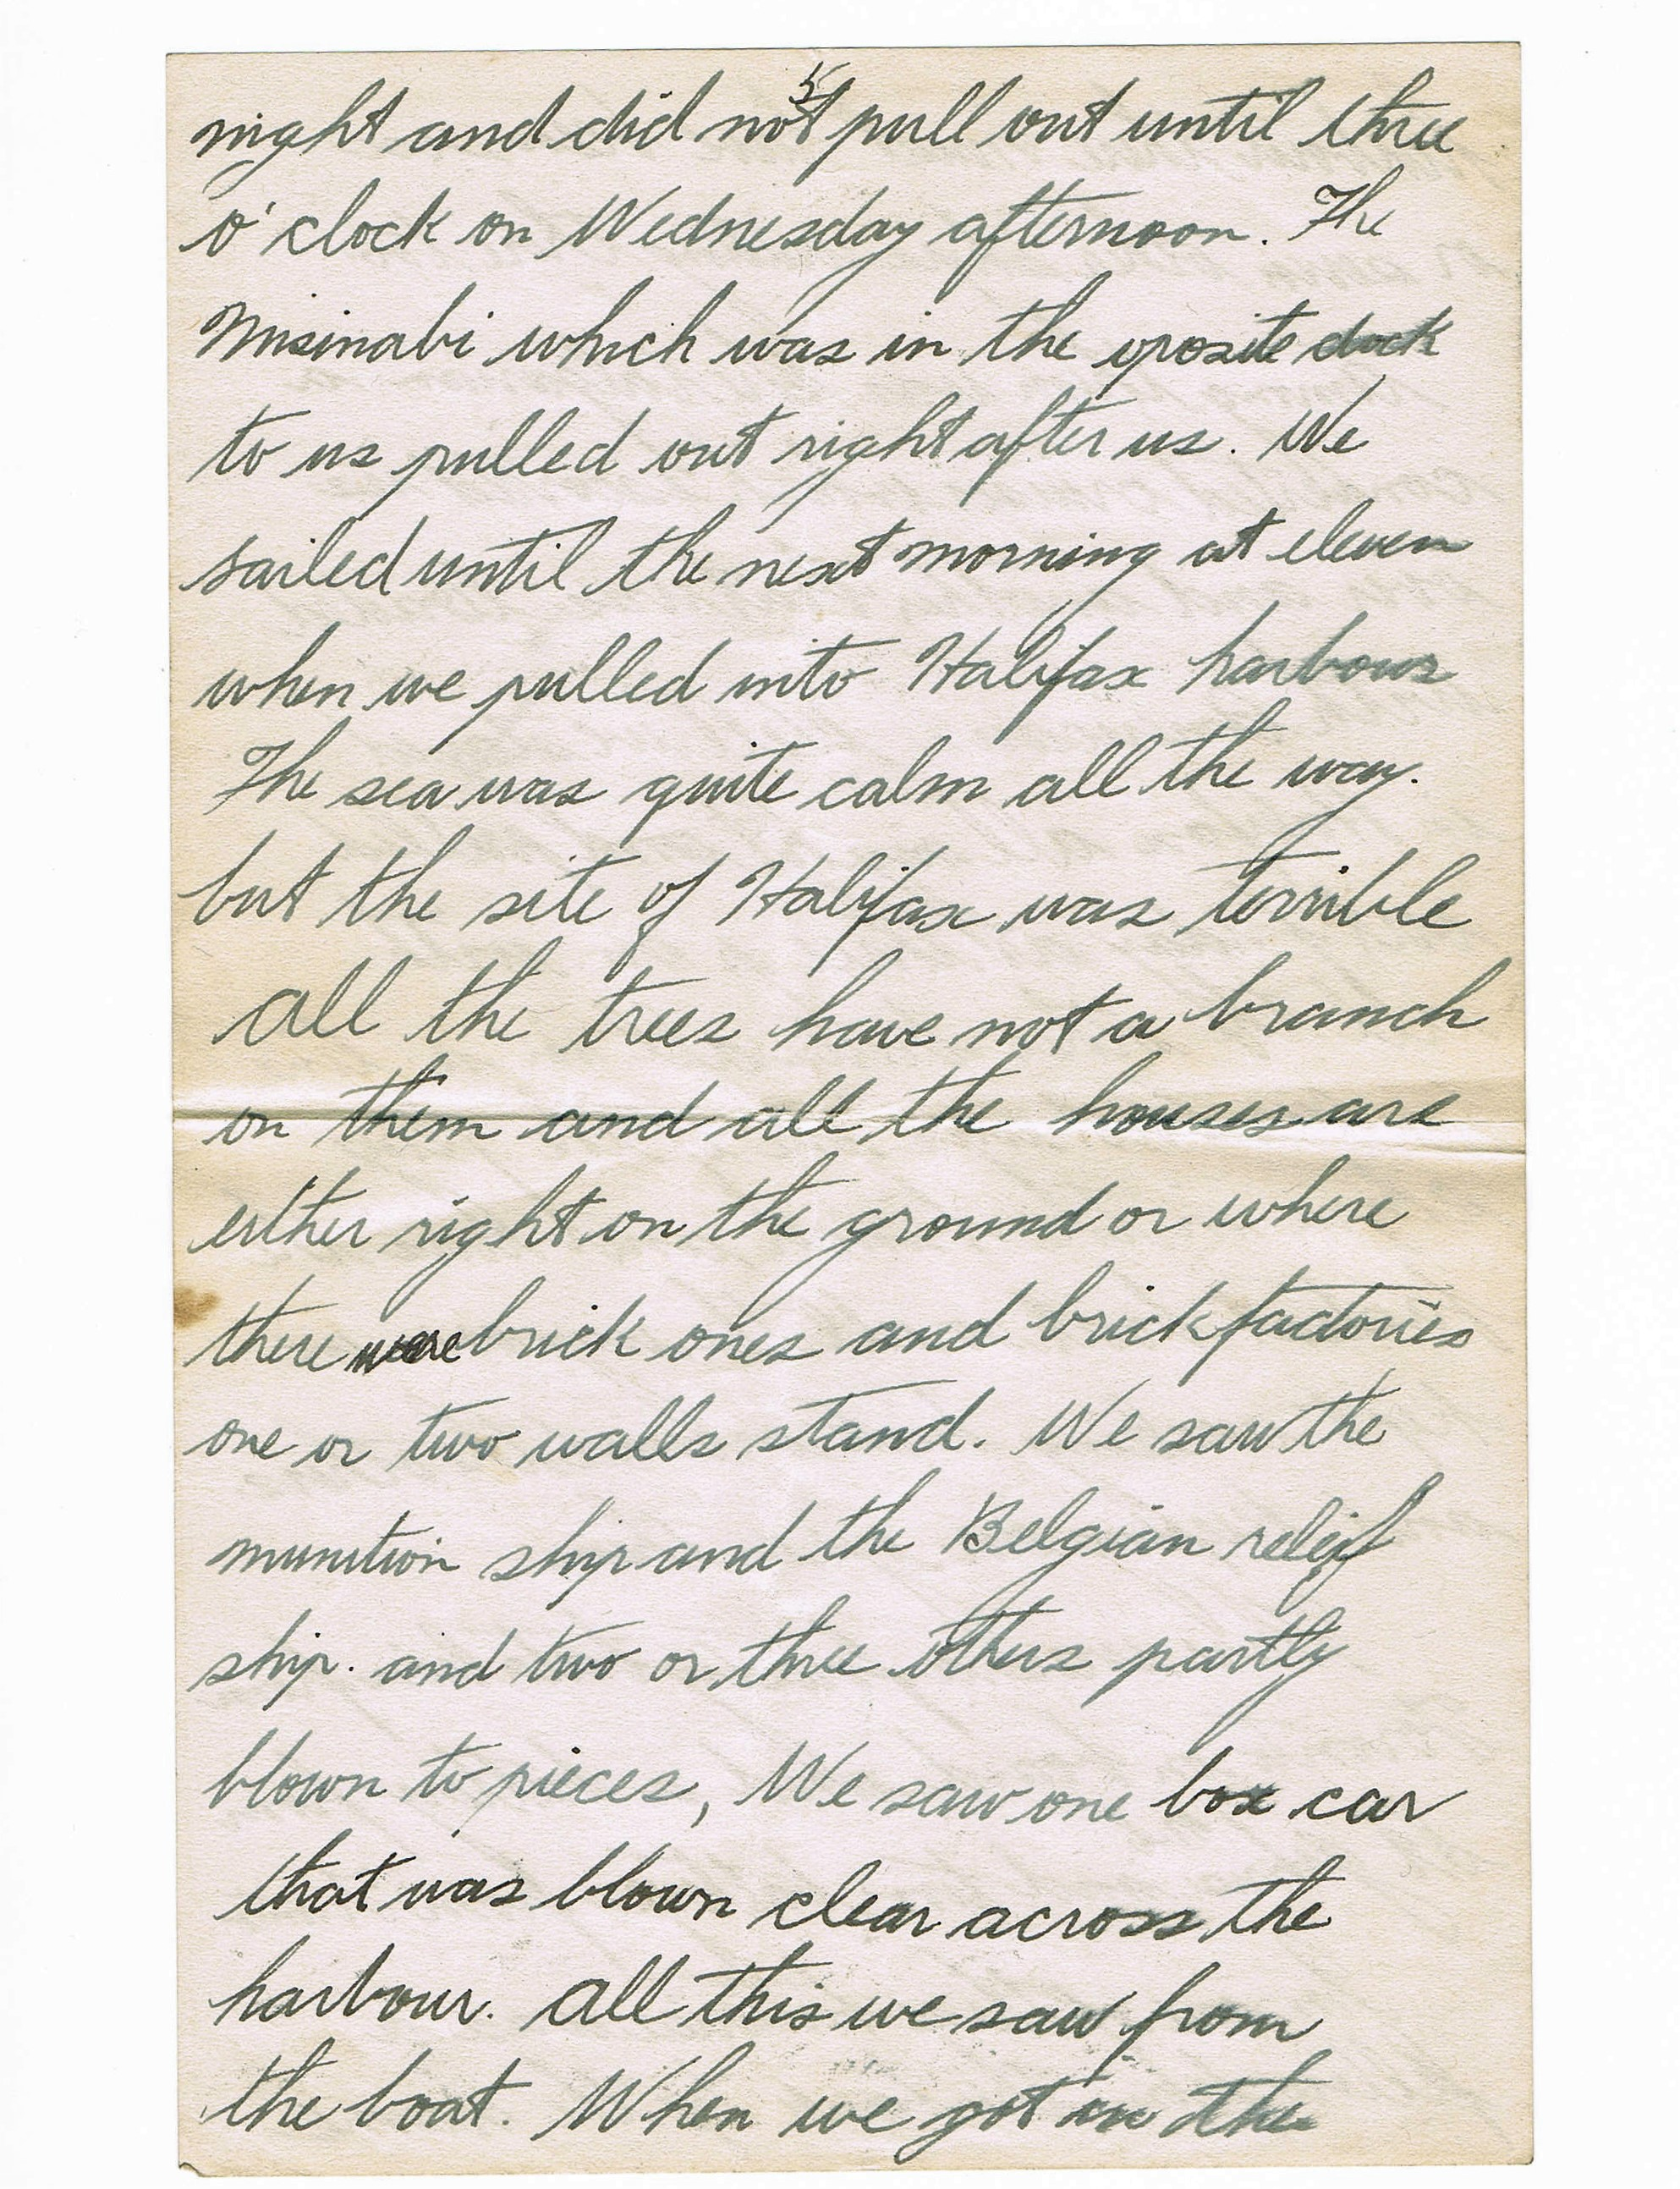 Fifth page of handwritten letter